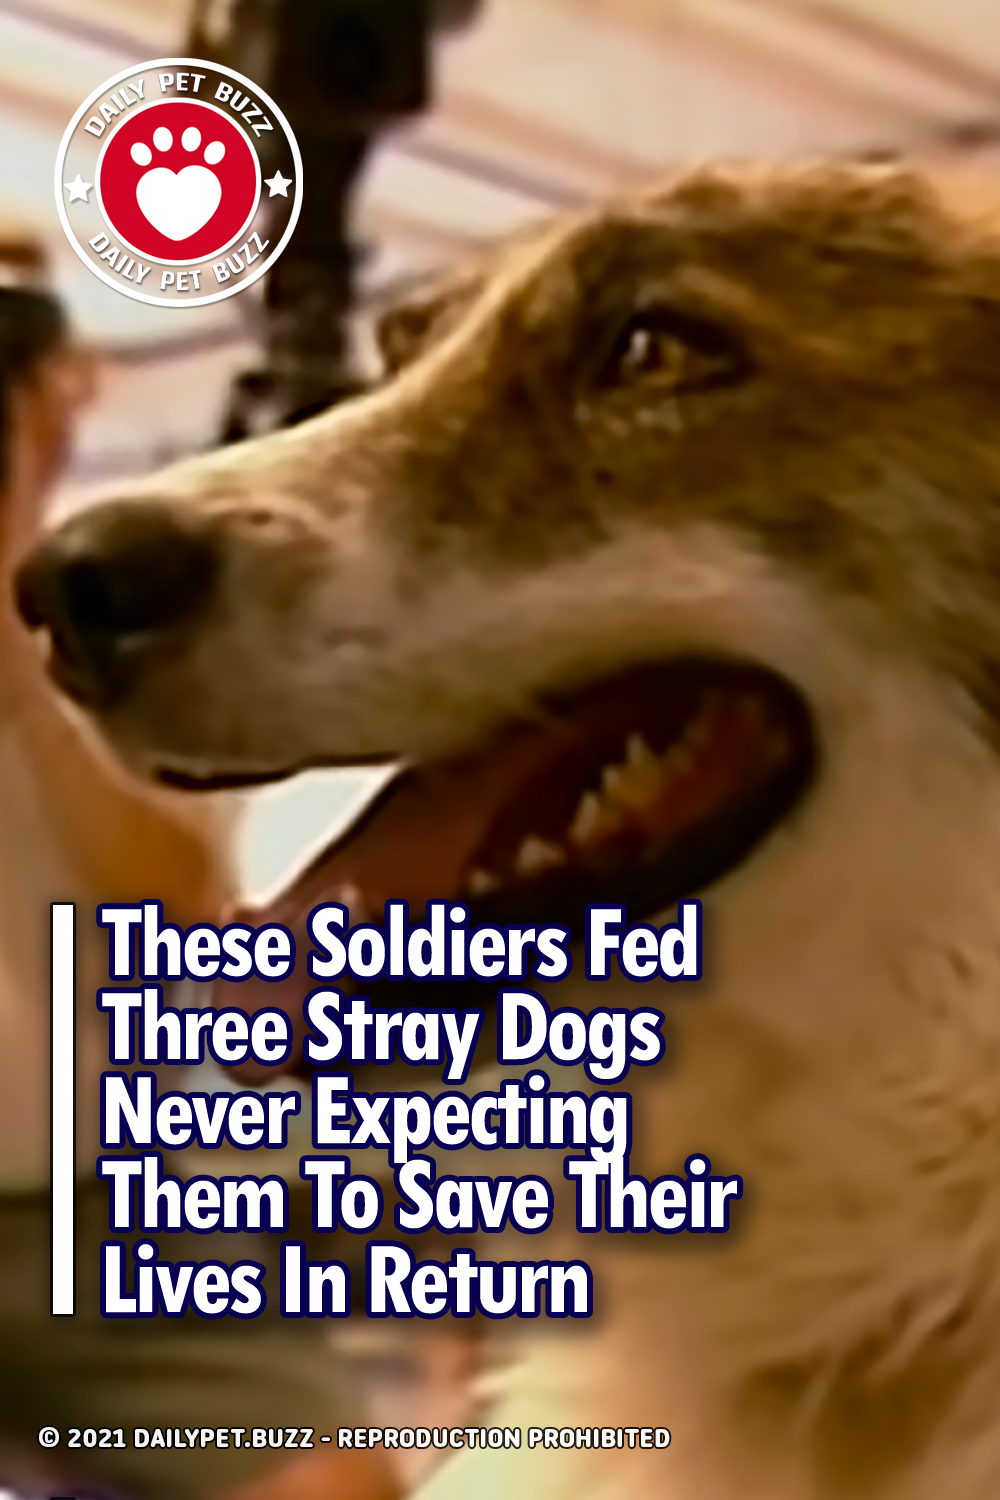 These Soldiers Fed Three Stray Dogs Never Expecting Them To Save Their Lives In Return